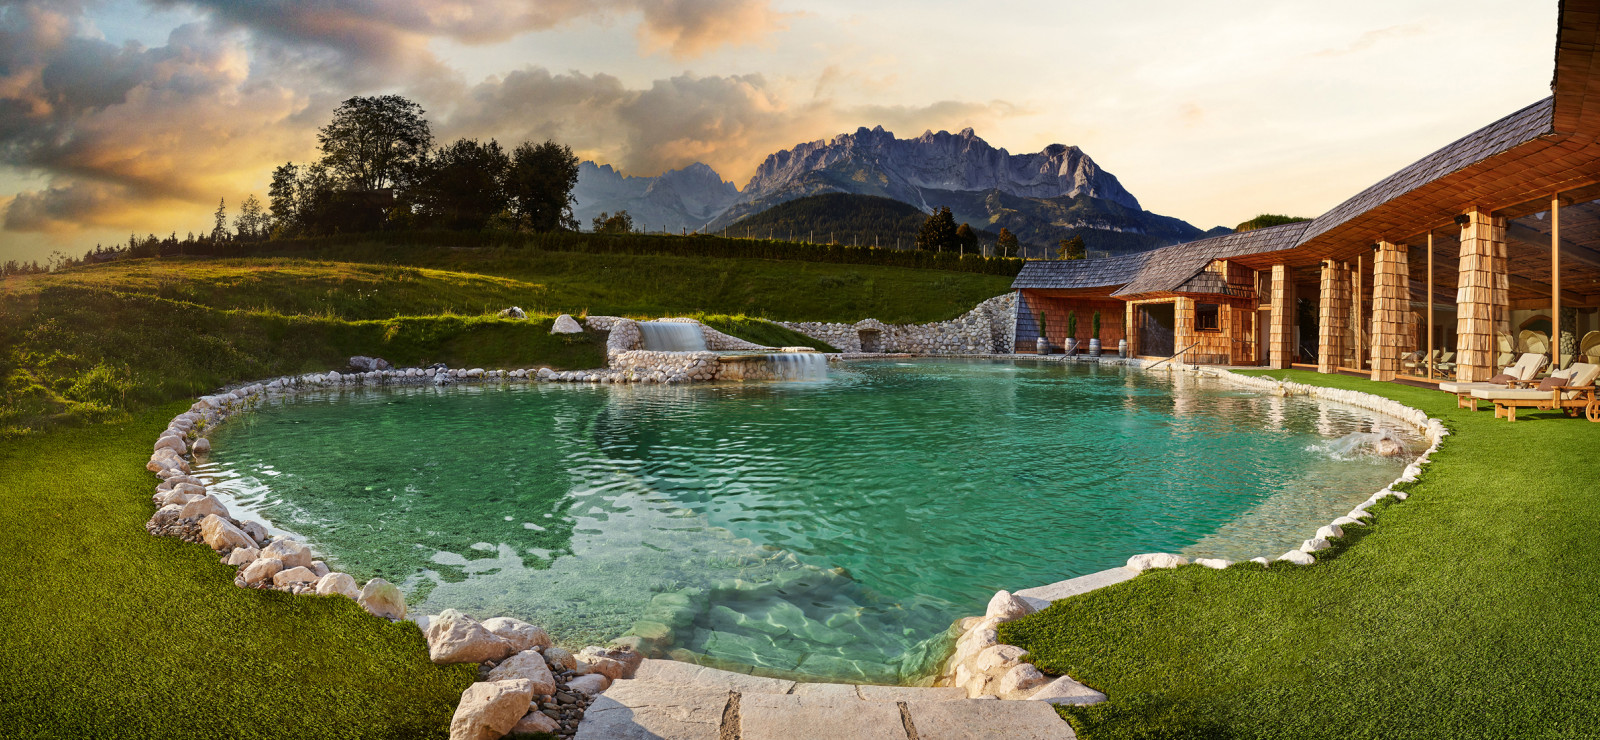 Wellnesshotel Bio- und Wellnessresort Stanglwirt | Going